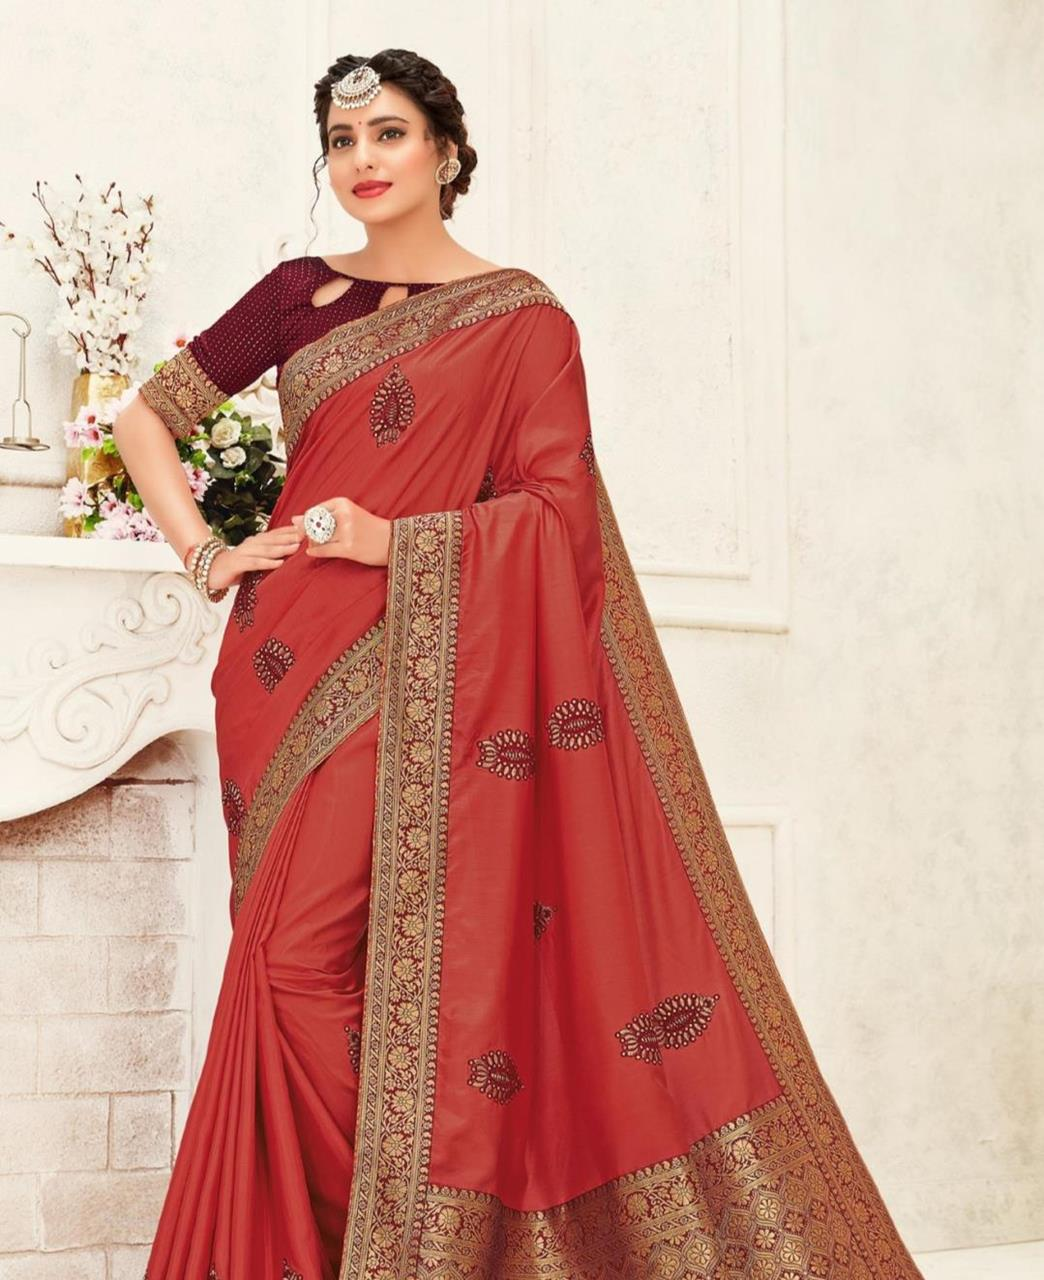 Stone Work Silk Saree in Maroon